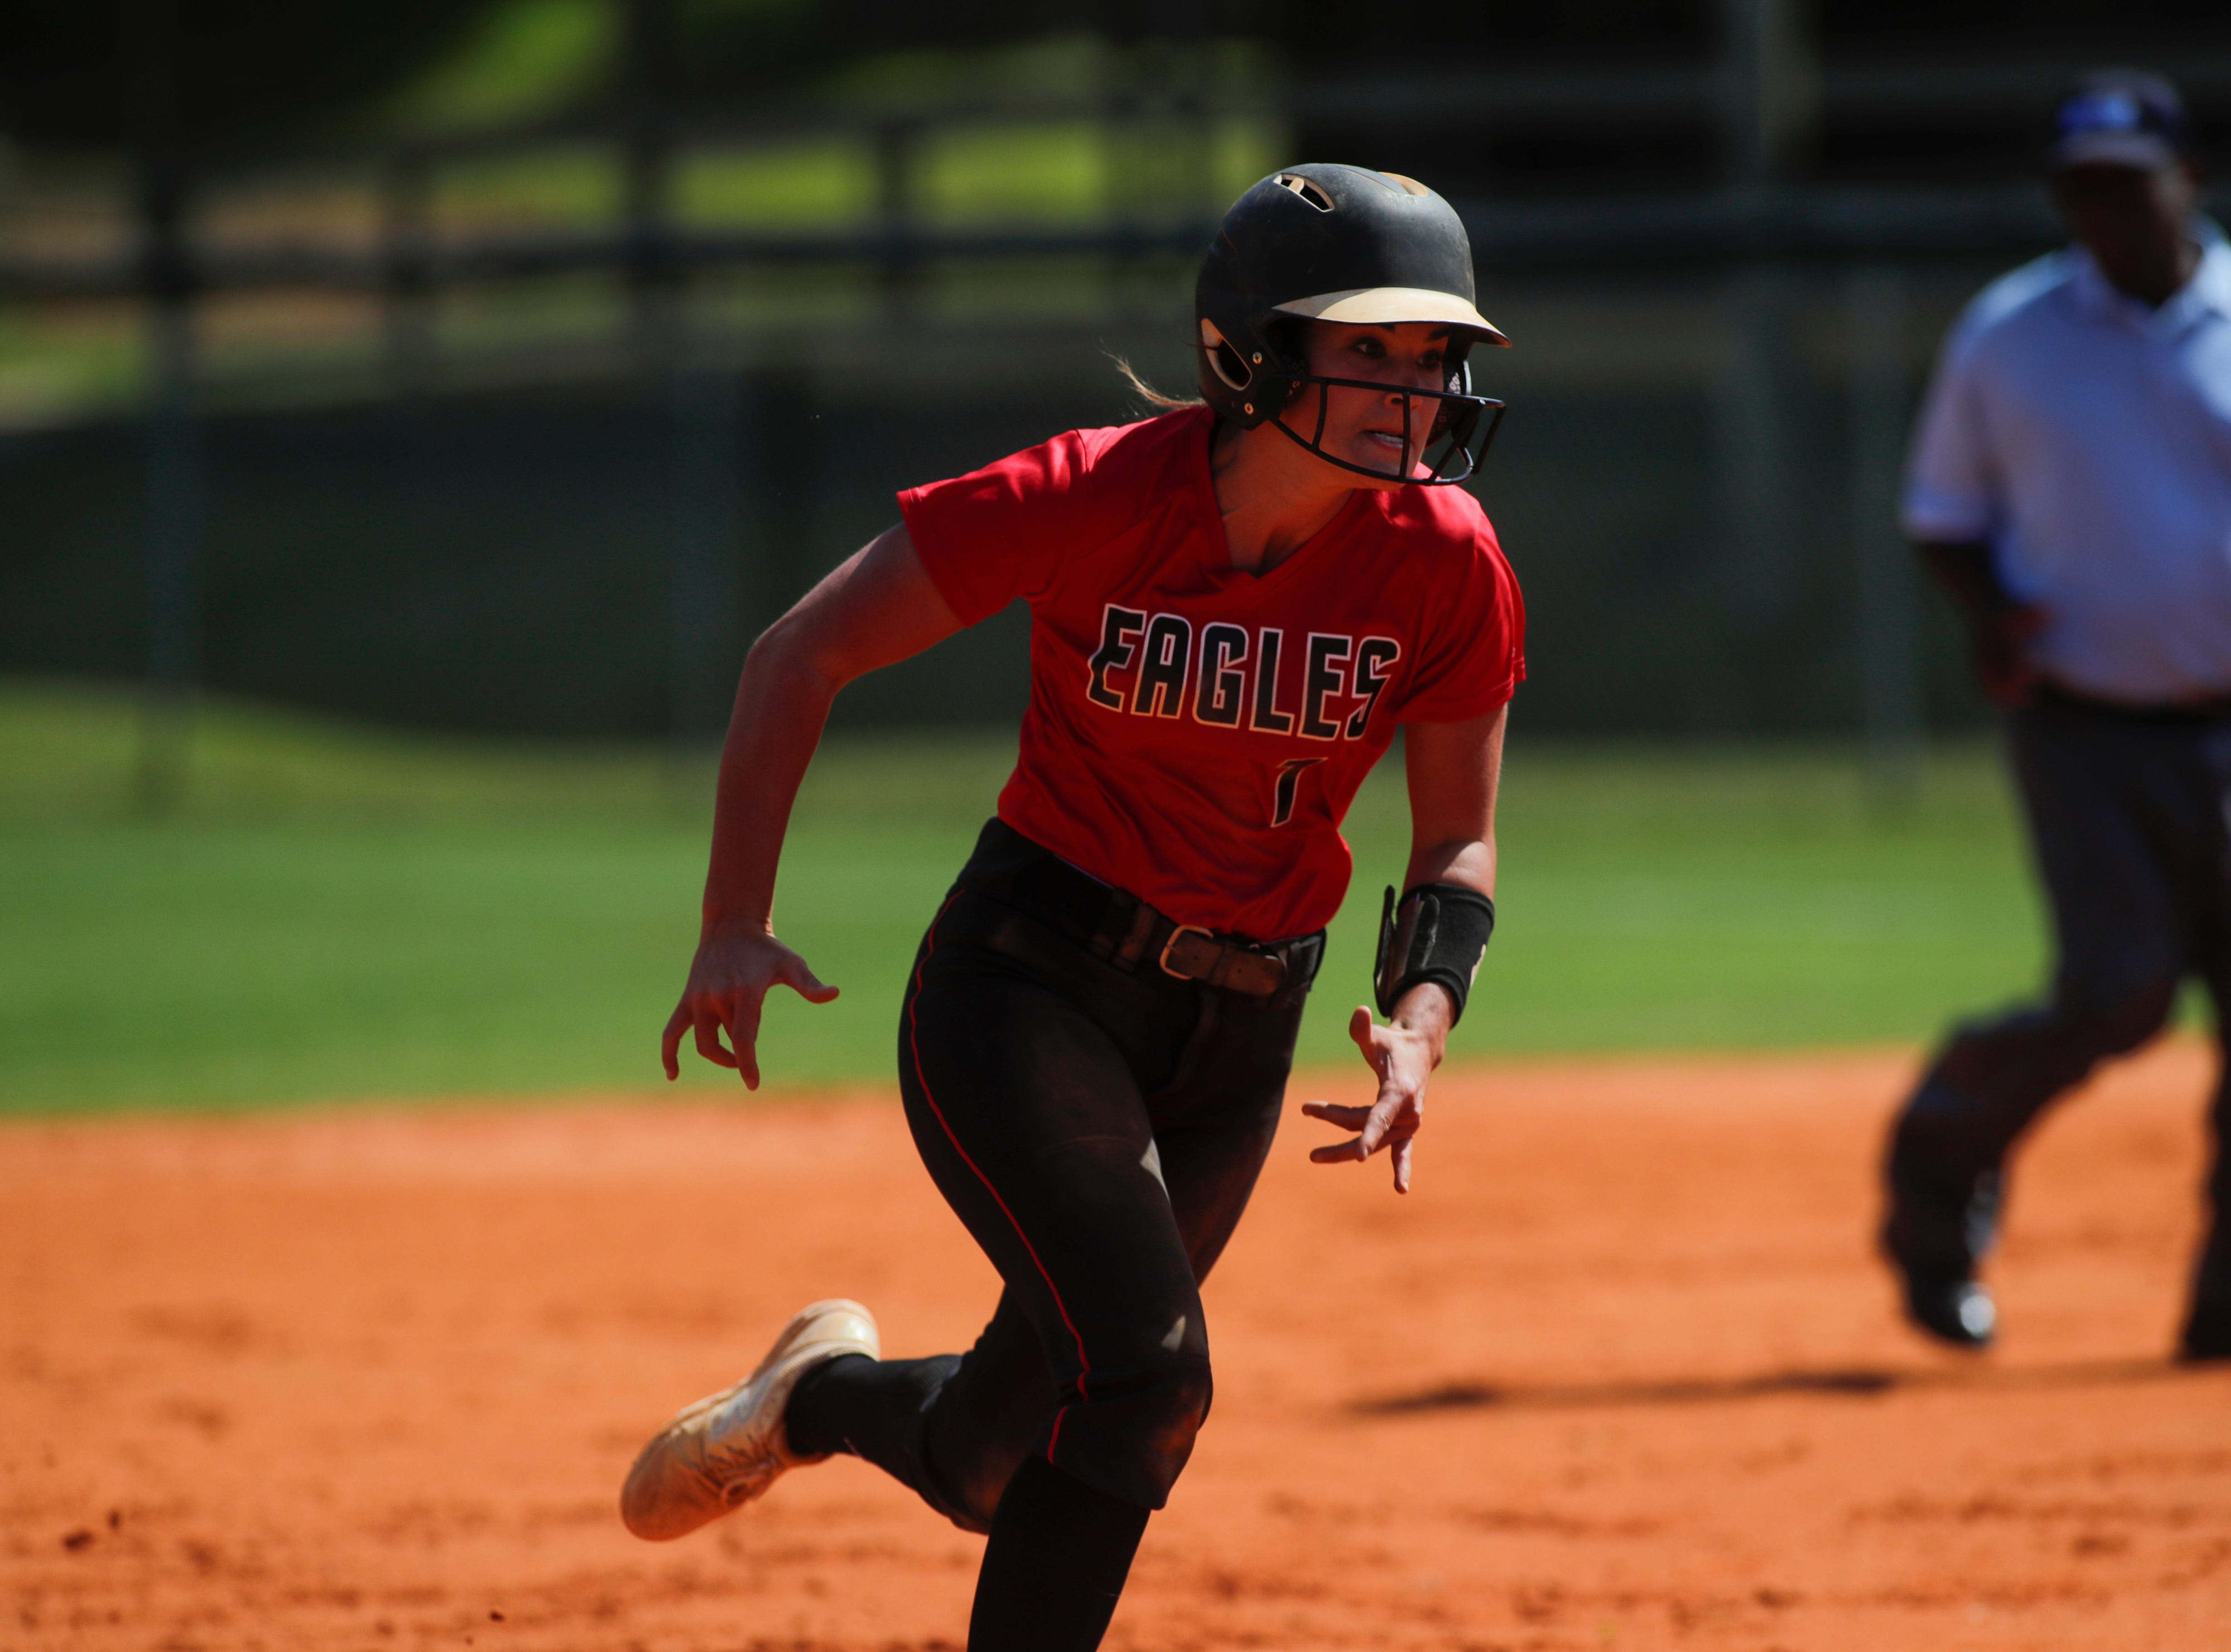 North Florida Christian's Chloe Culp (1) runs to third during the 1-3A regional final game between NFC and University Christian at NFC Tuesday, May 14, 2019. UC defeated NFC 16 to 11 to advance to the state tournament.